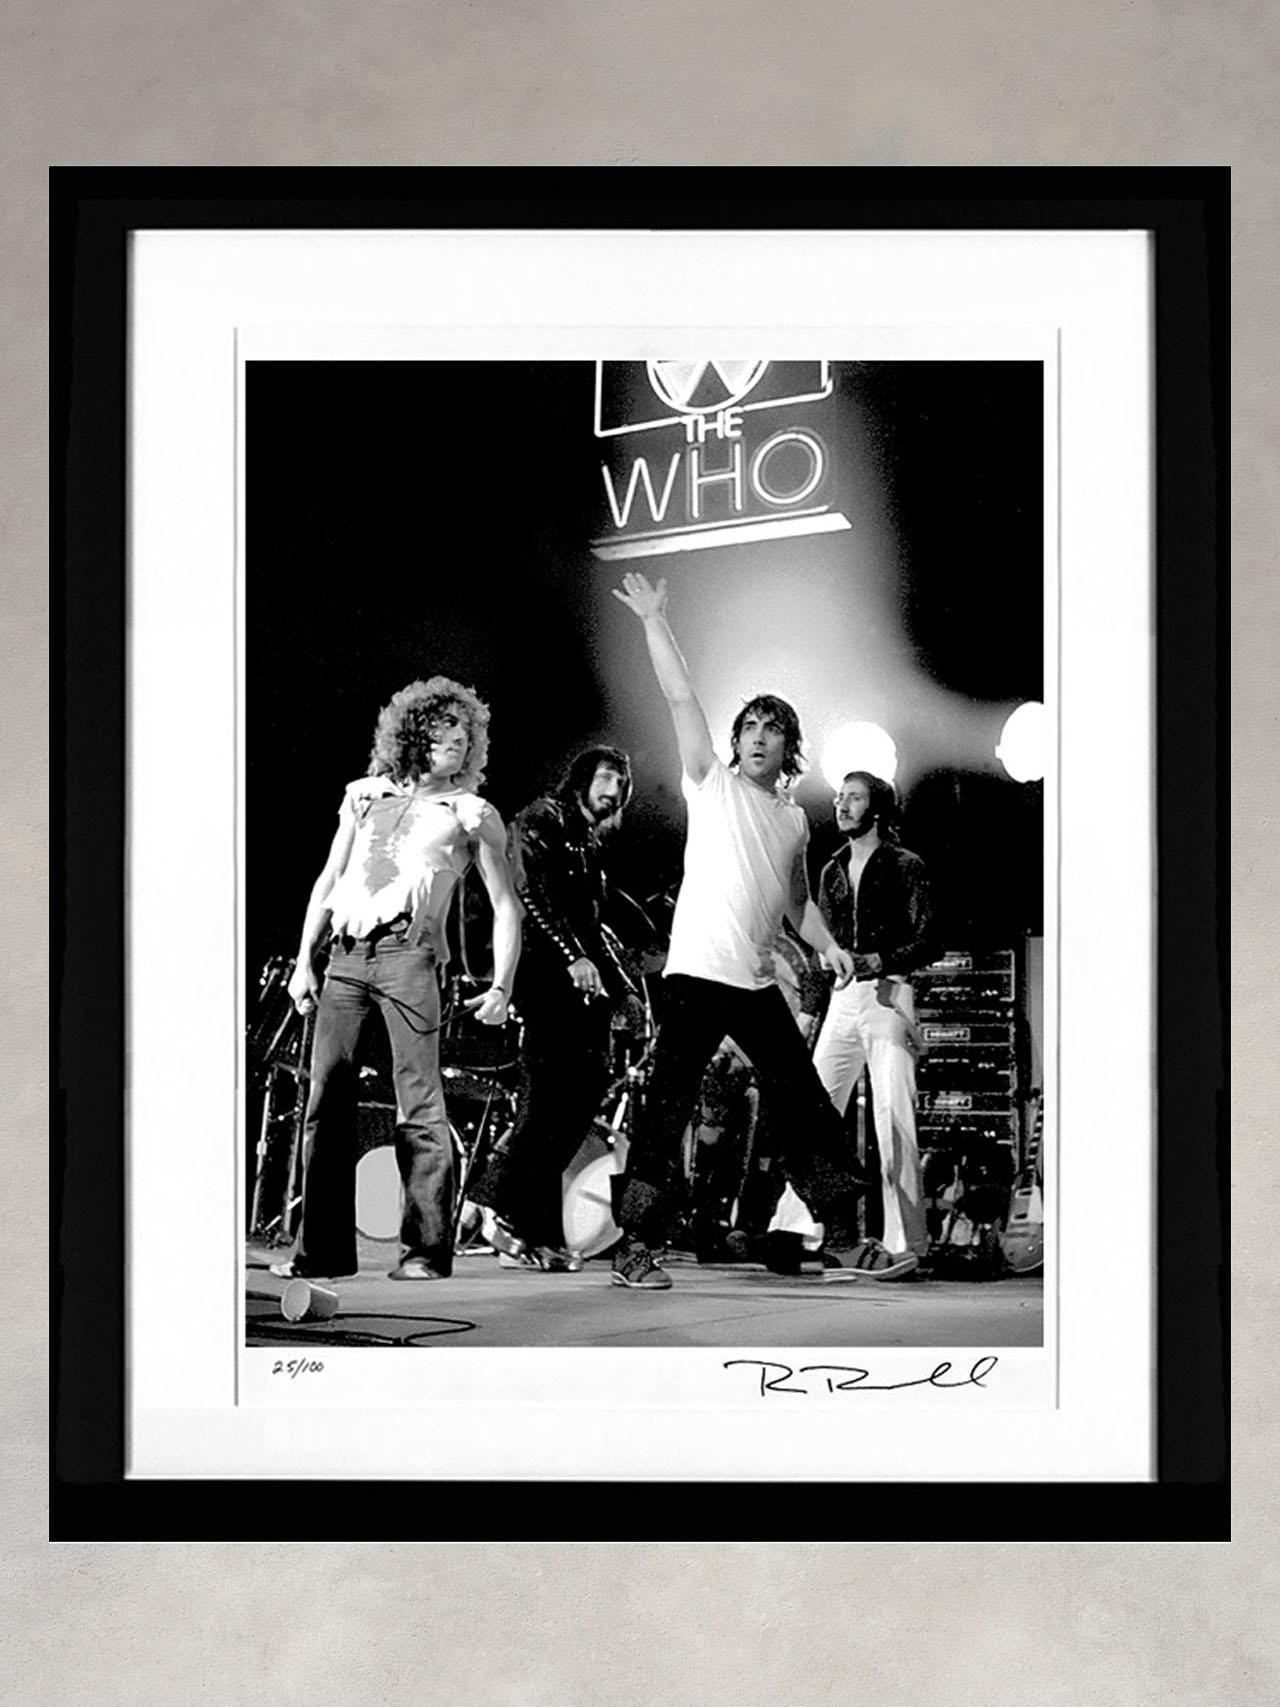 The Who by Ron Pownall